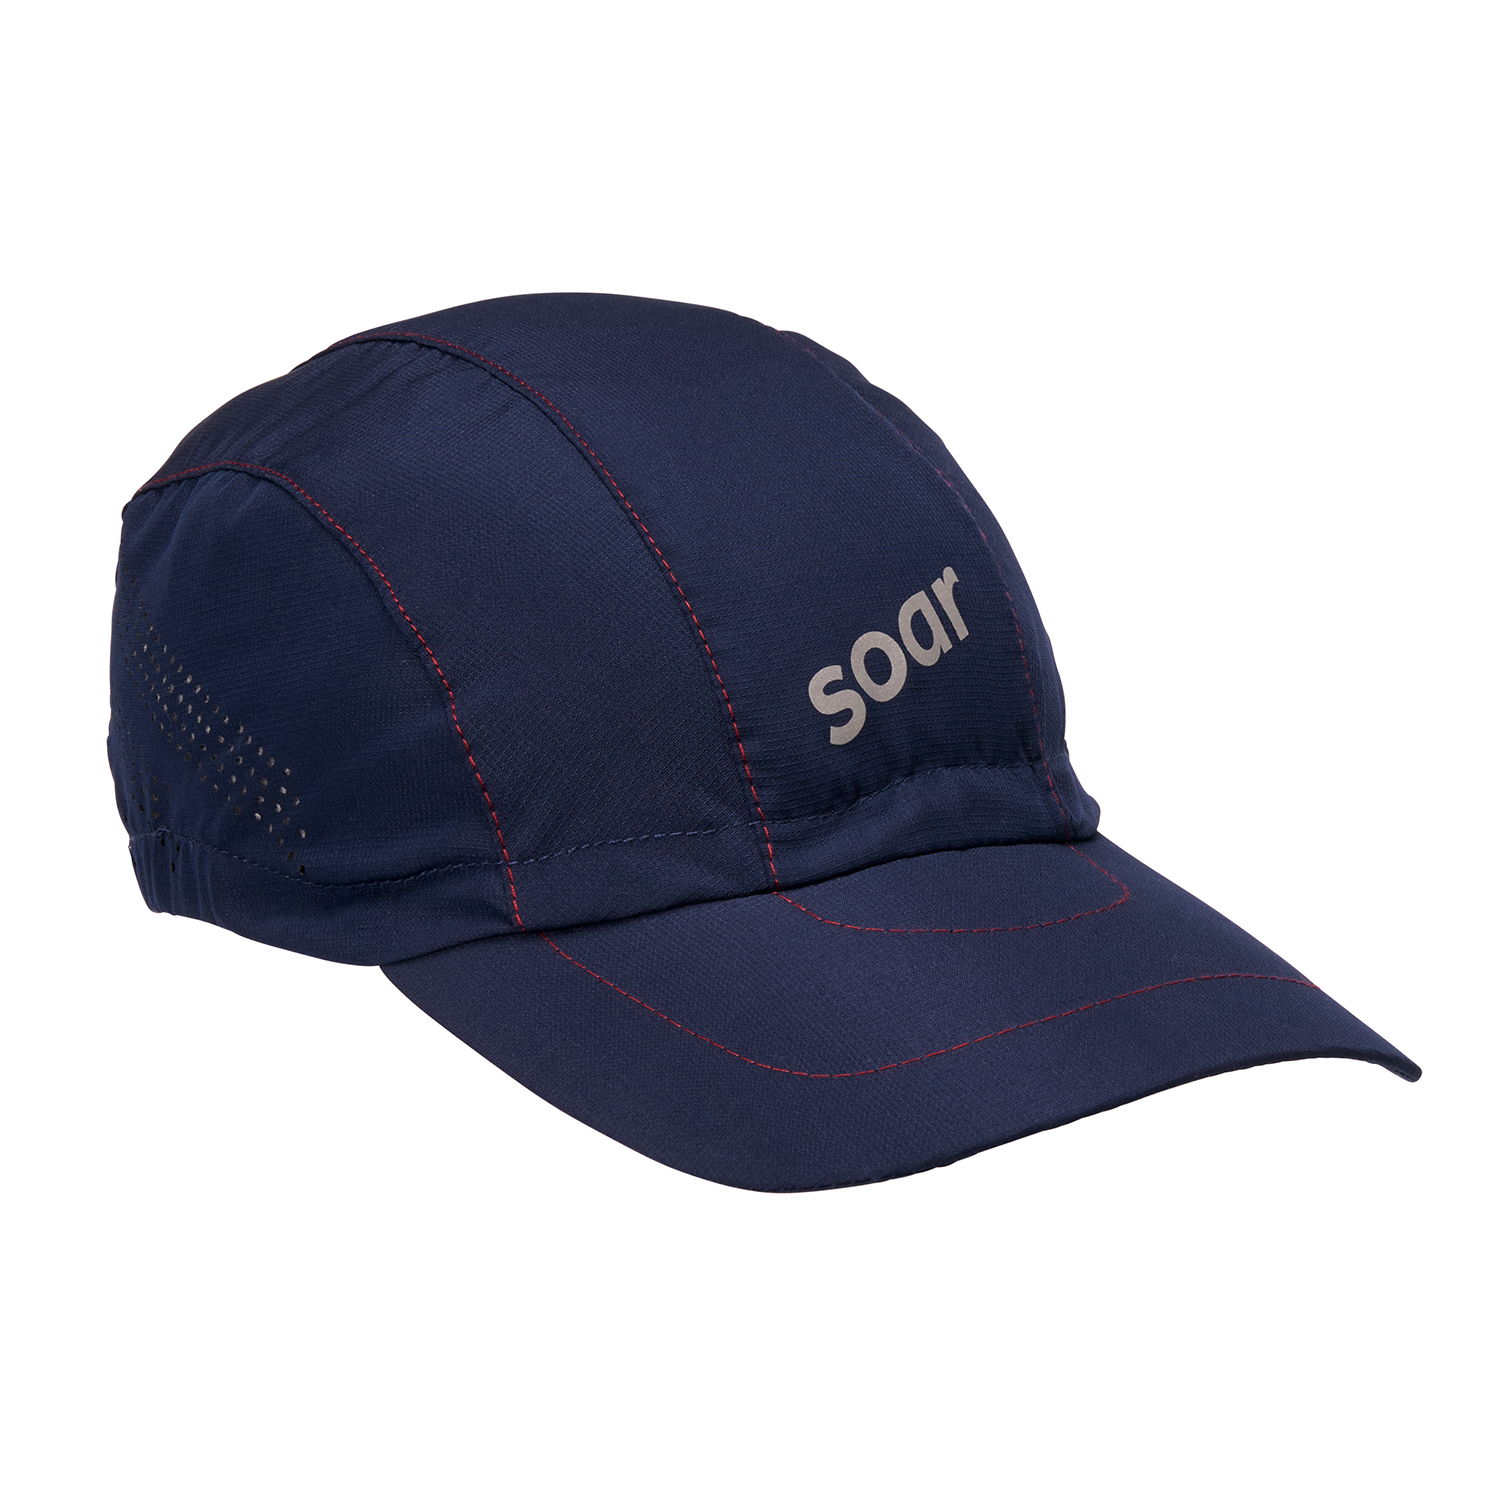 Soar Lightweight running cap